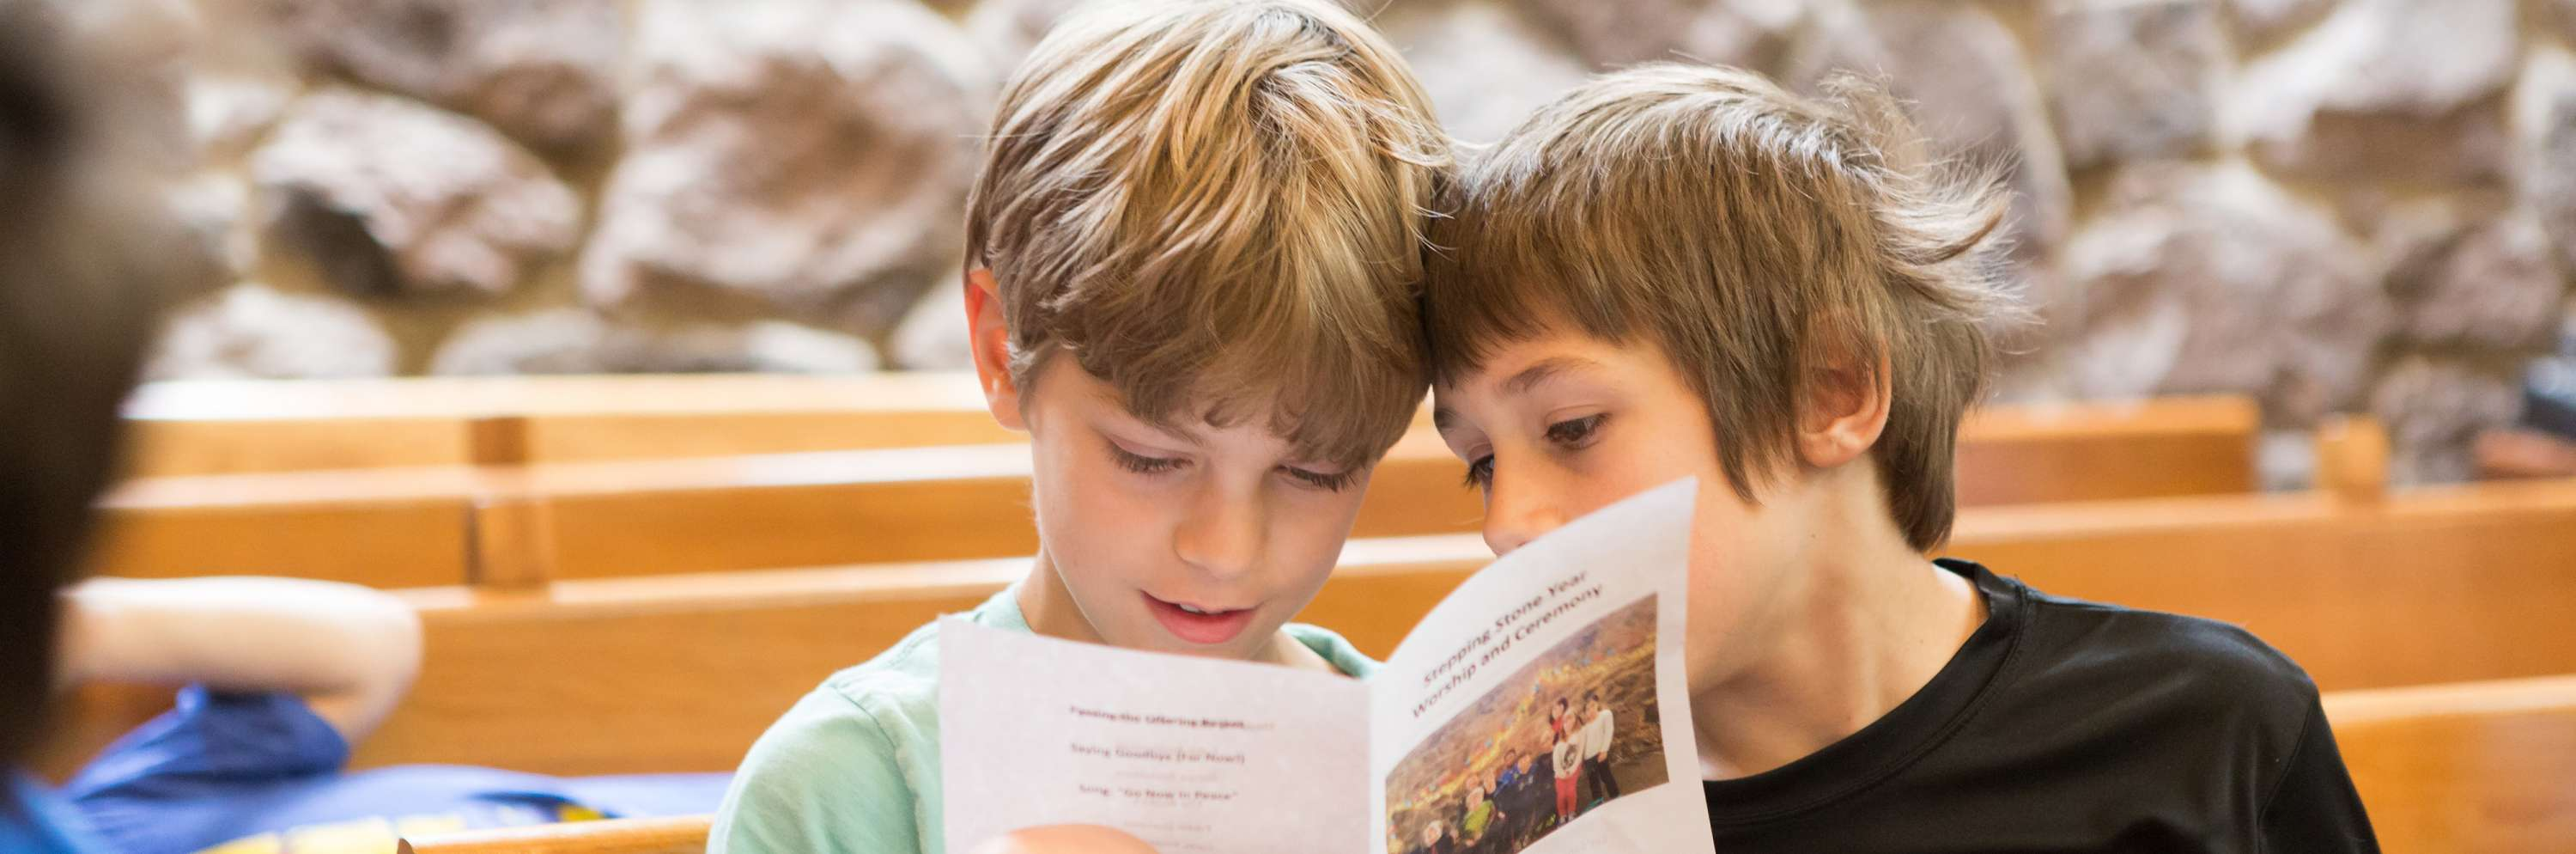 Two boys sitting in a pew reading a text